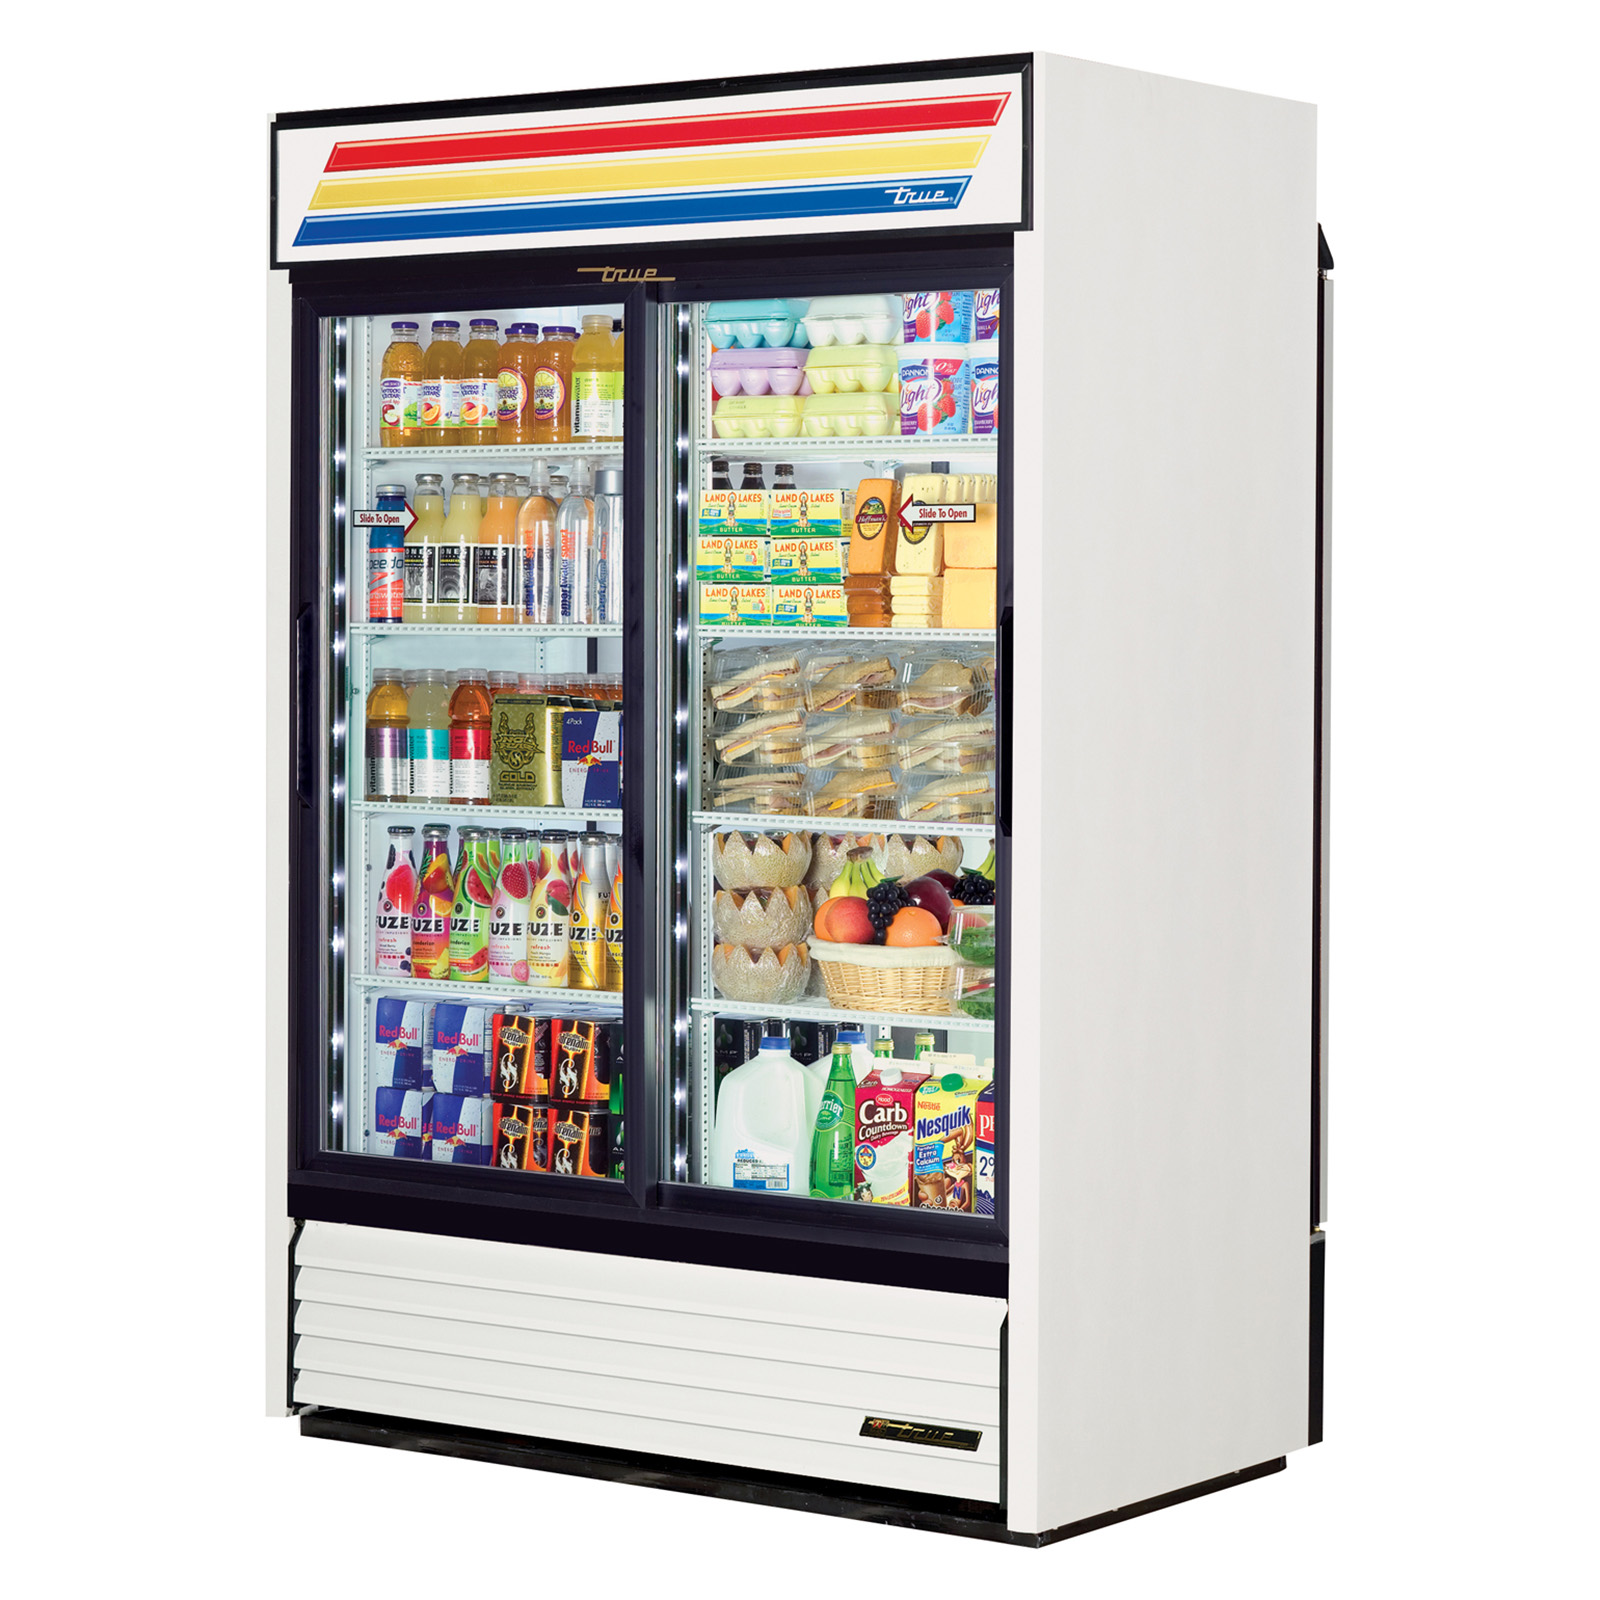 GDM-47RL-LD True - Refrigerated Merchandiser pass thru